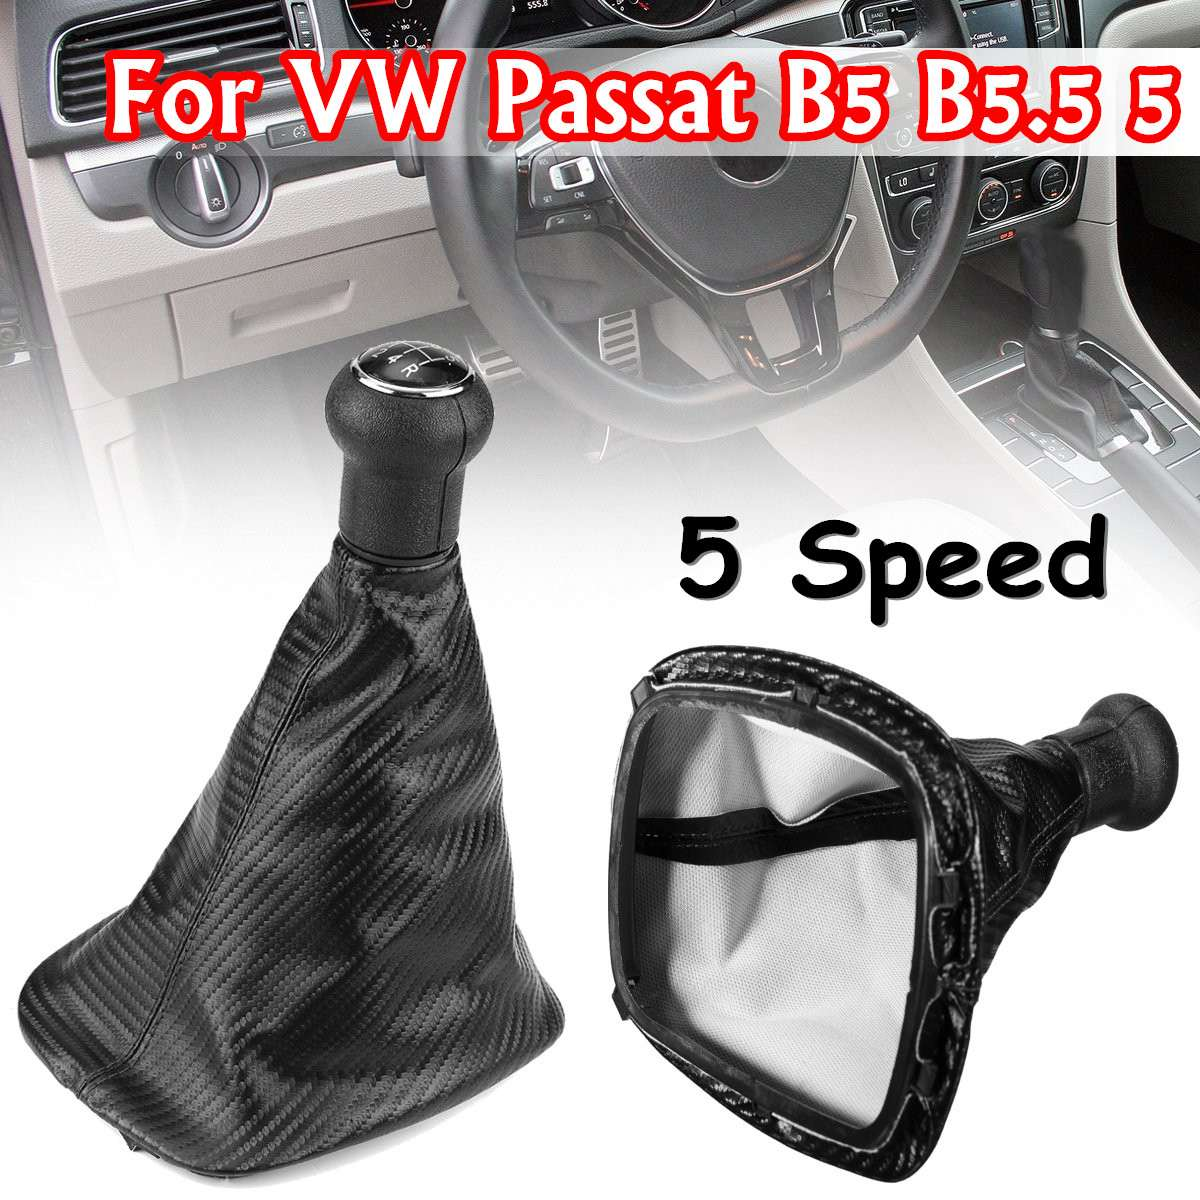 Car 5 Speed Carbon Fiber Gear Shift Knob Gaitor Boot For VW Passat B5 B5.5 Bora Golf aluminum alloy air conditioning heat control switch knob ac knob for volkswagen vw lavida passat b5 bora golf 4 car styling